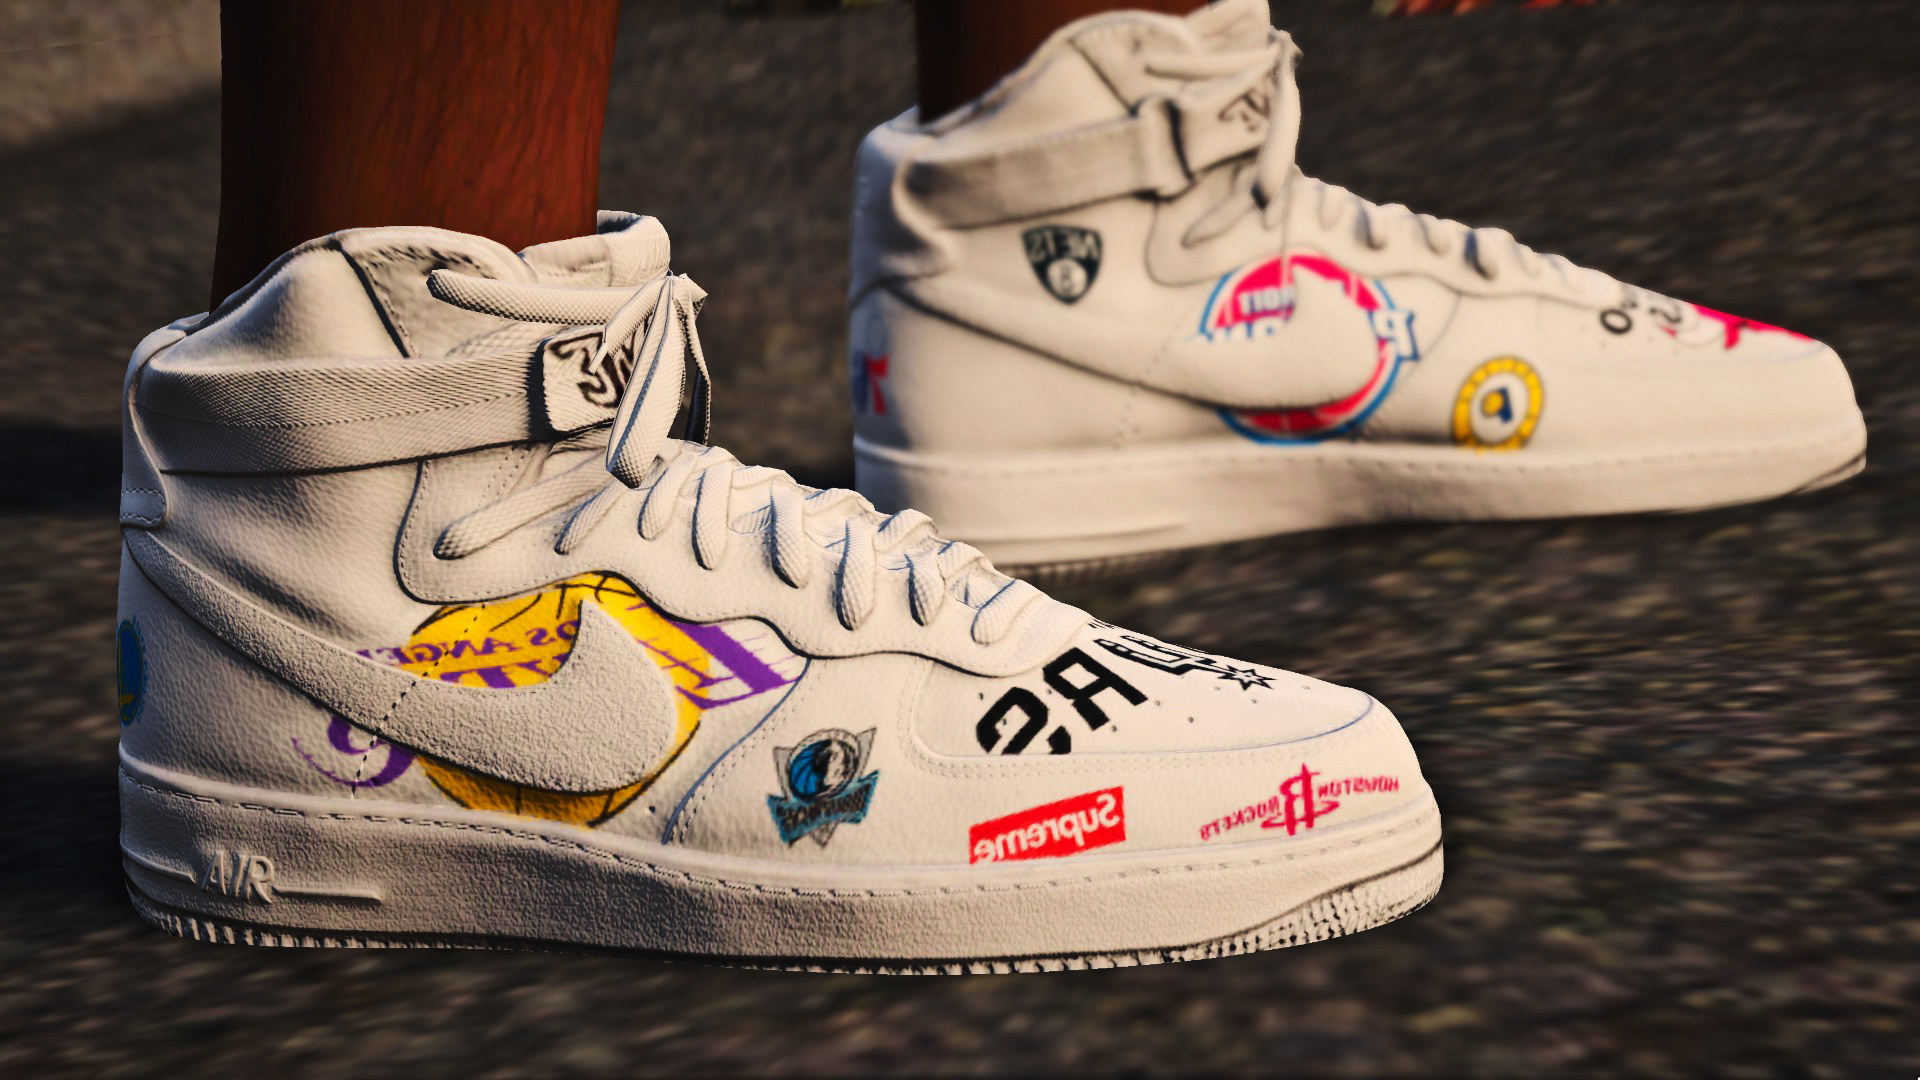 online retailer 678c9 e1745 air force 1 high supreme x nba (white and black) - GTA5-Mods.com